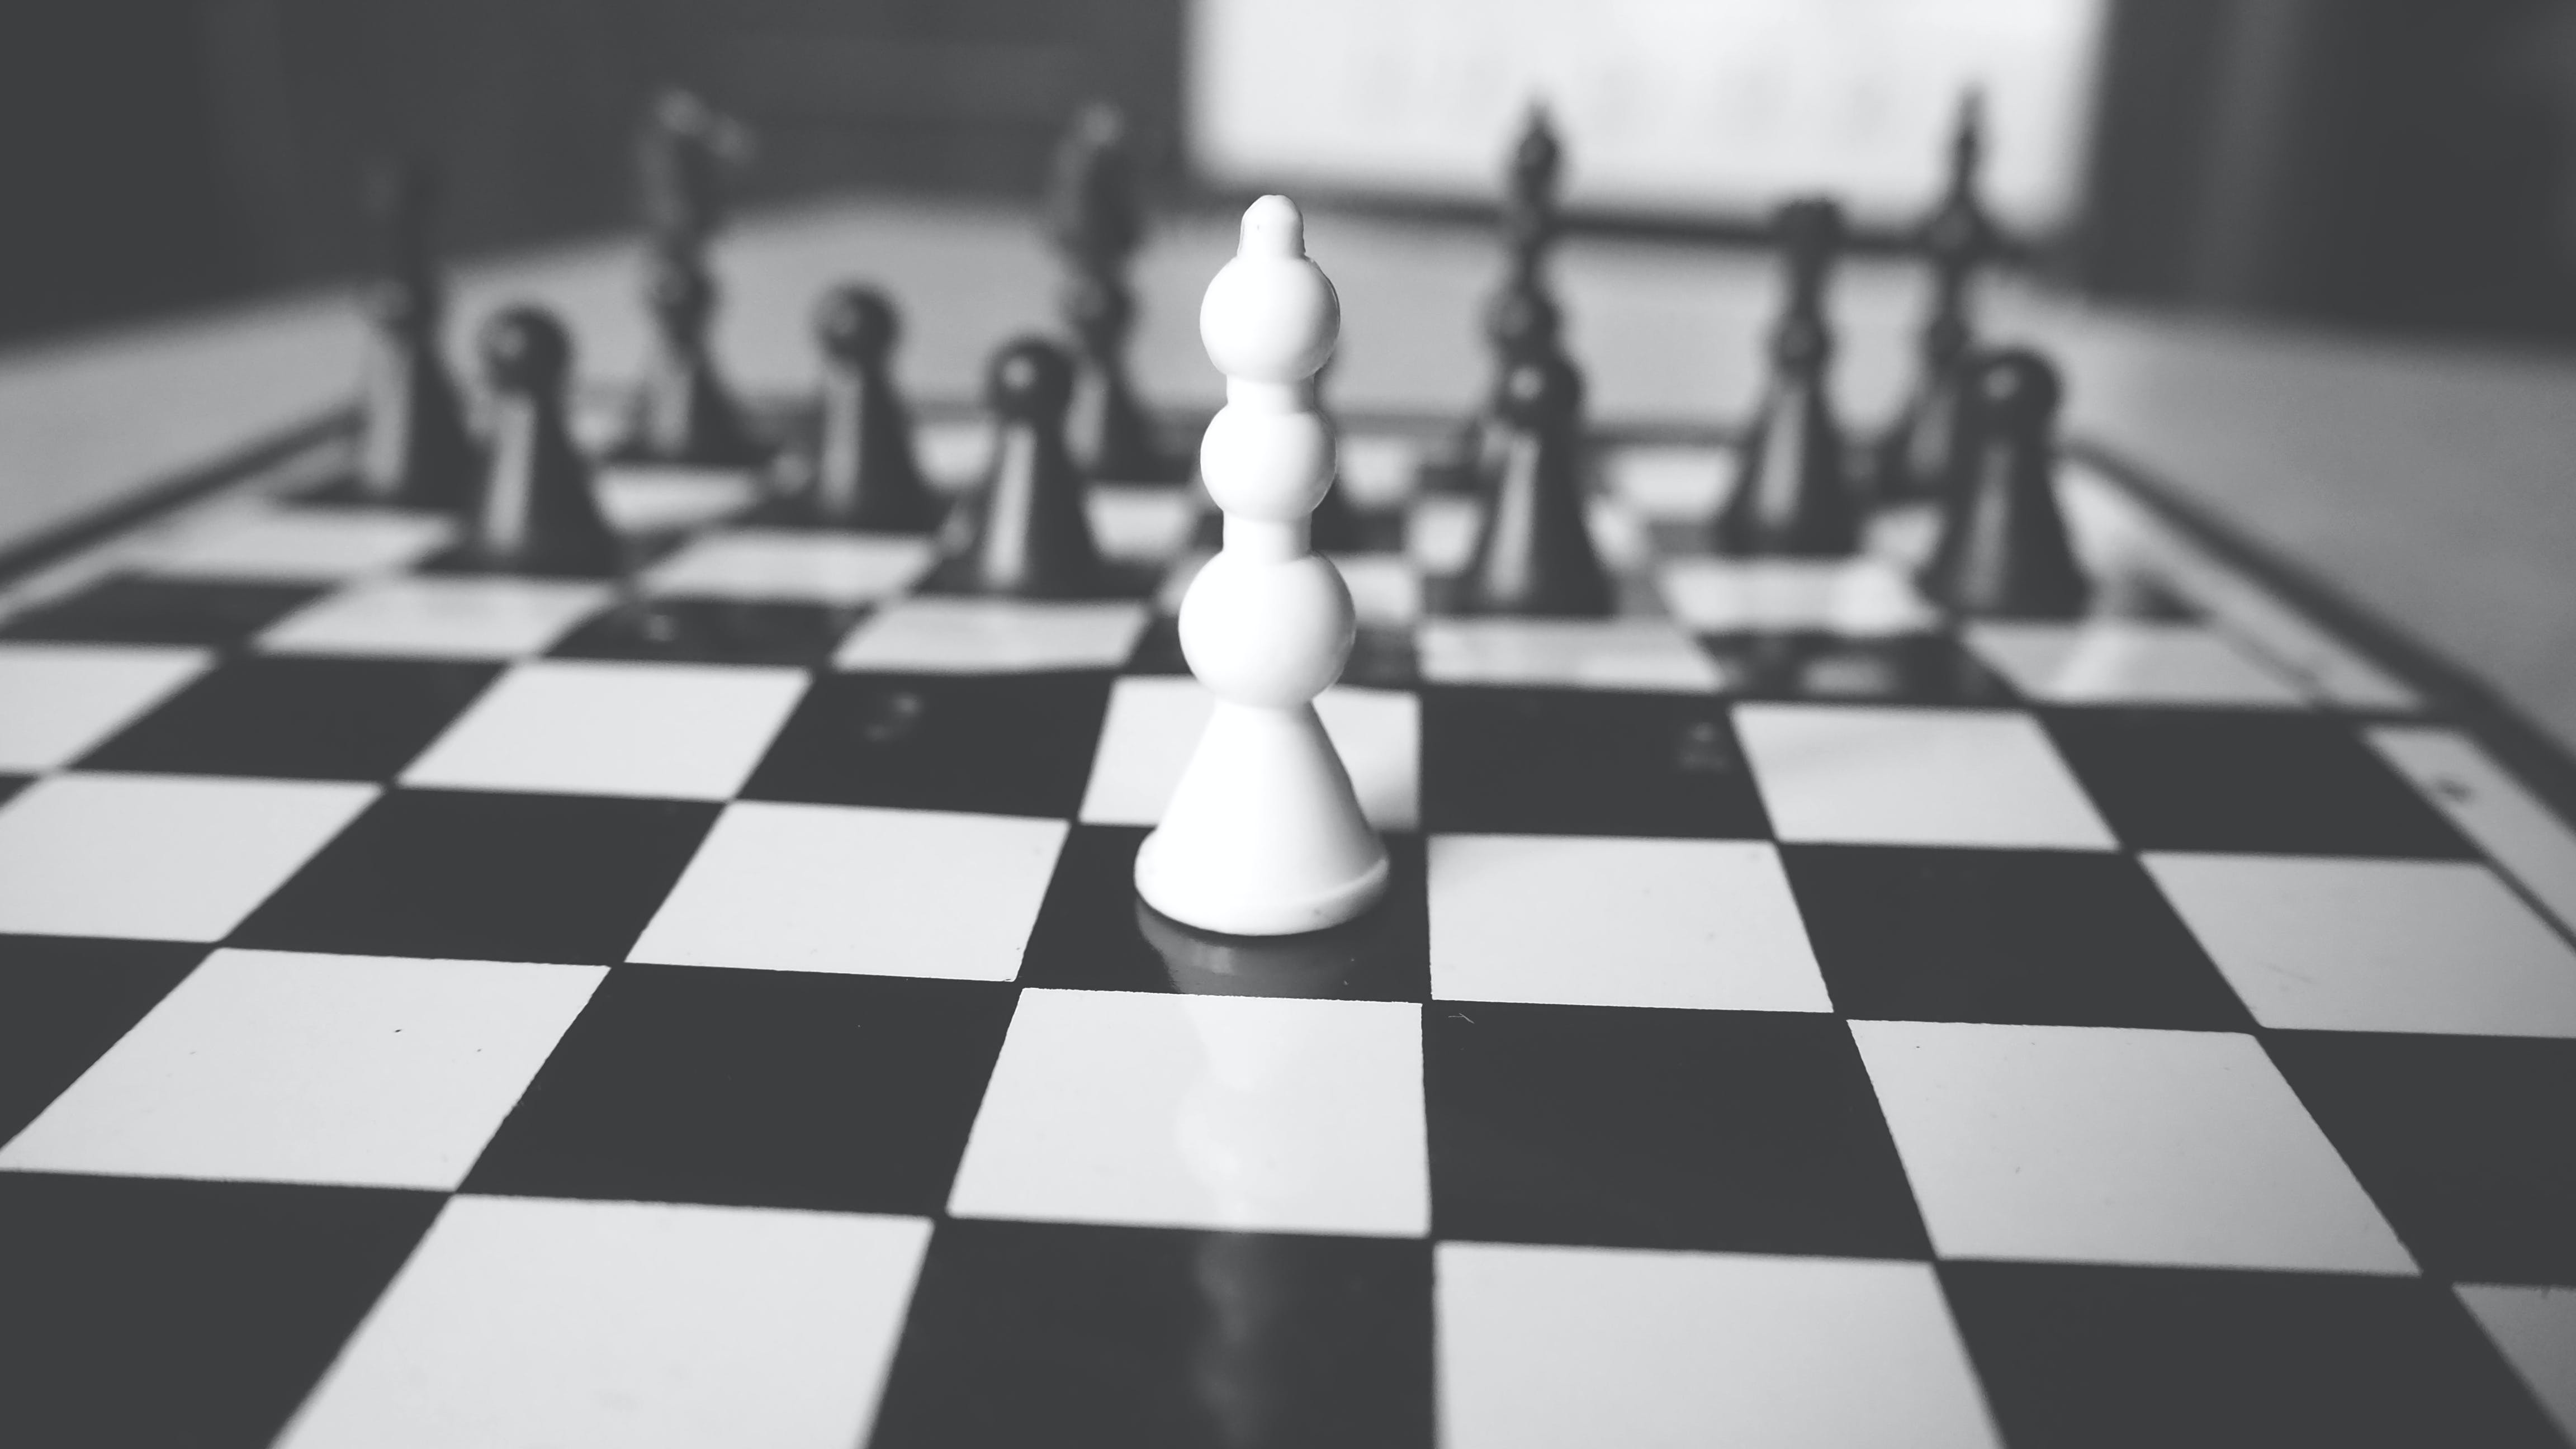 White and Black Chess Board